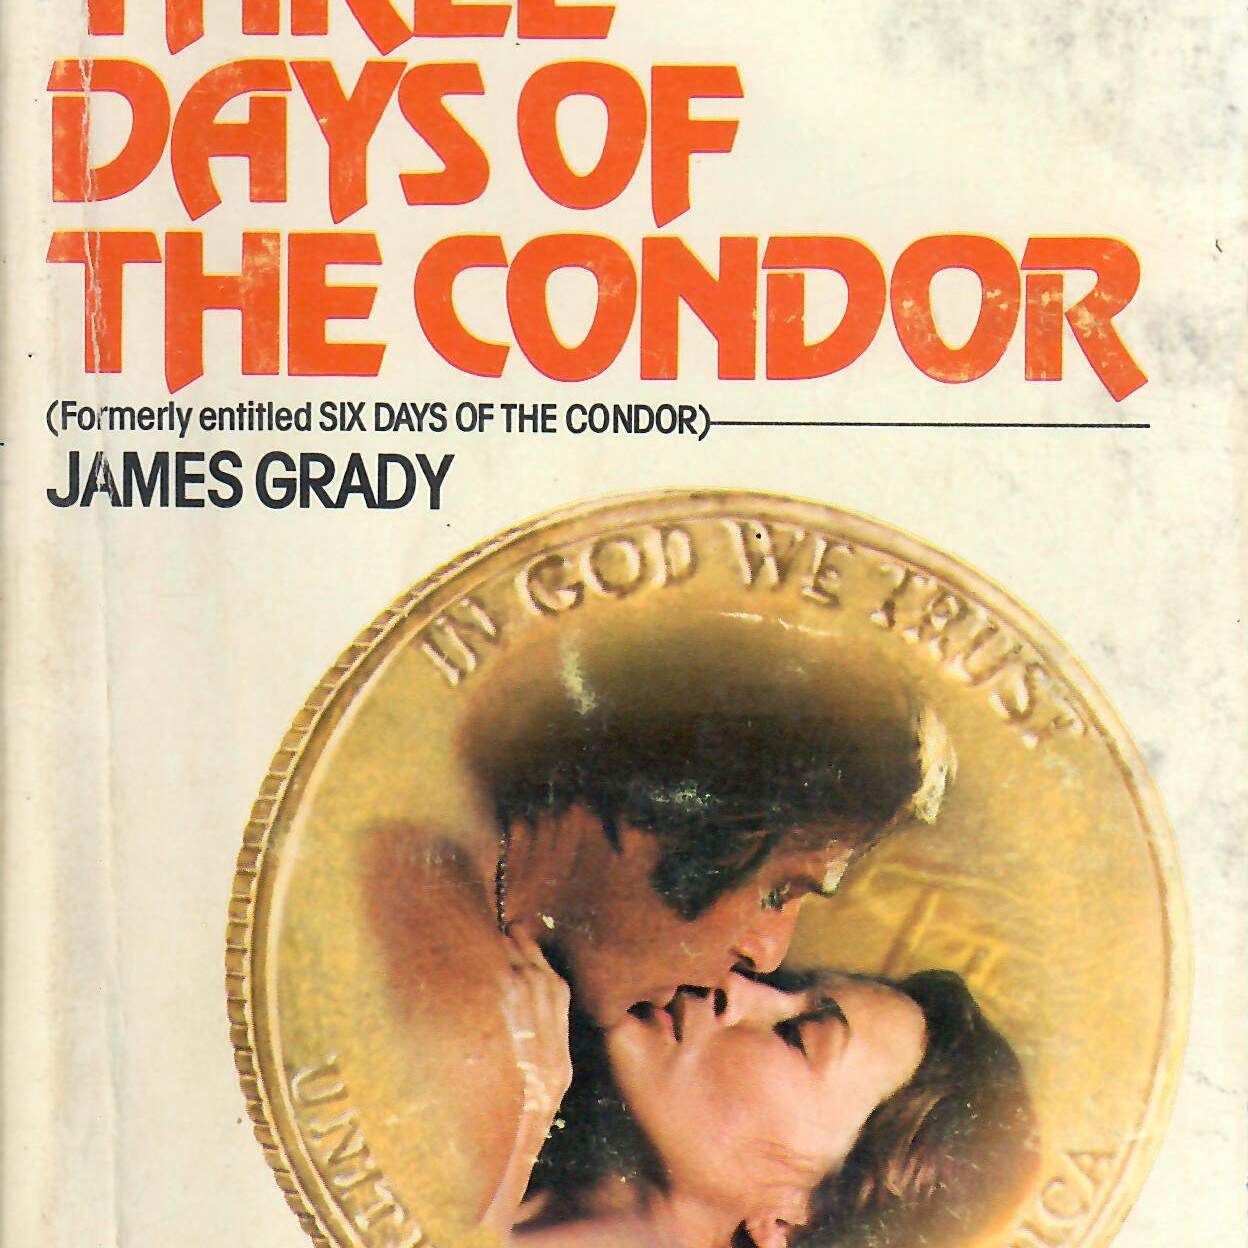 3 Days of the Condor Poster